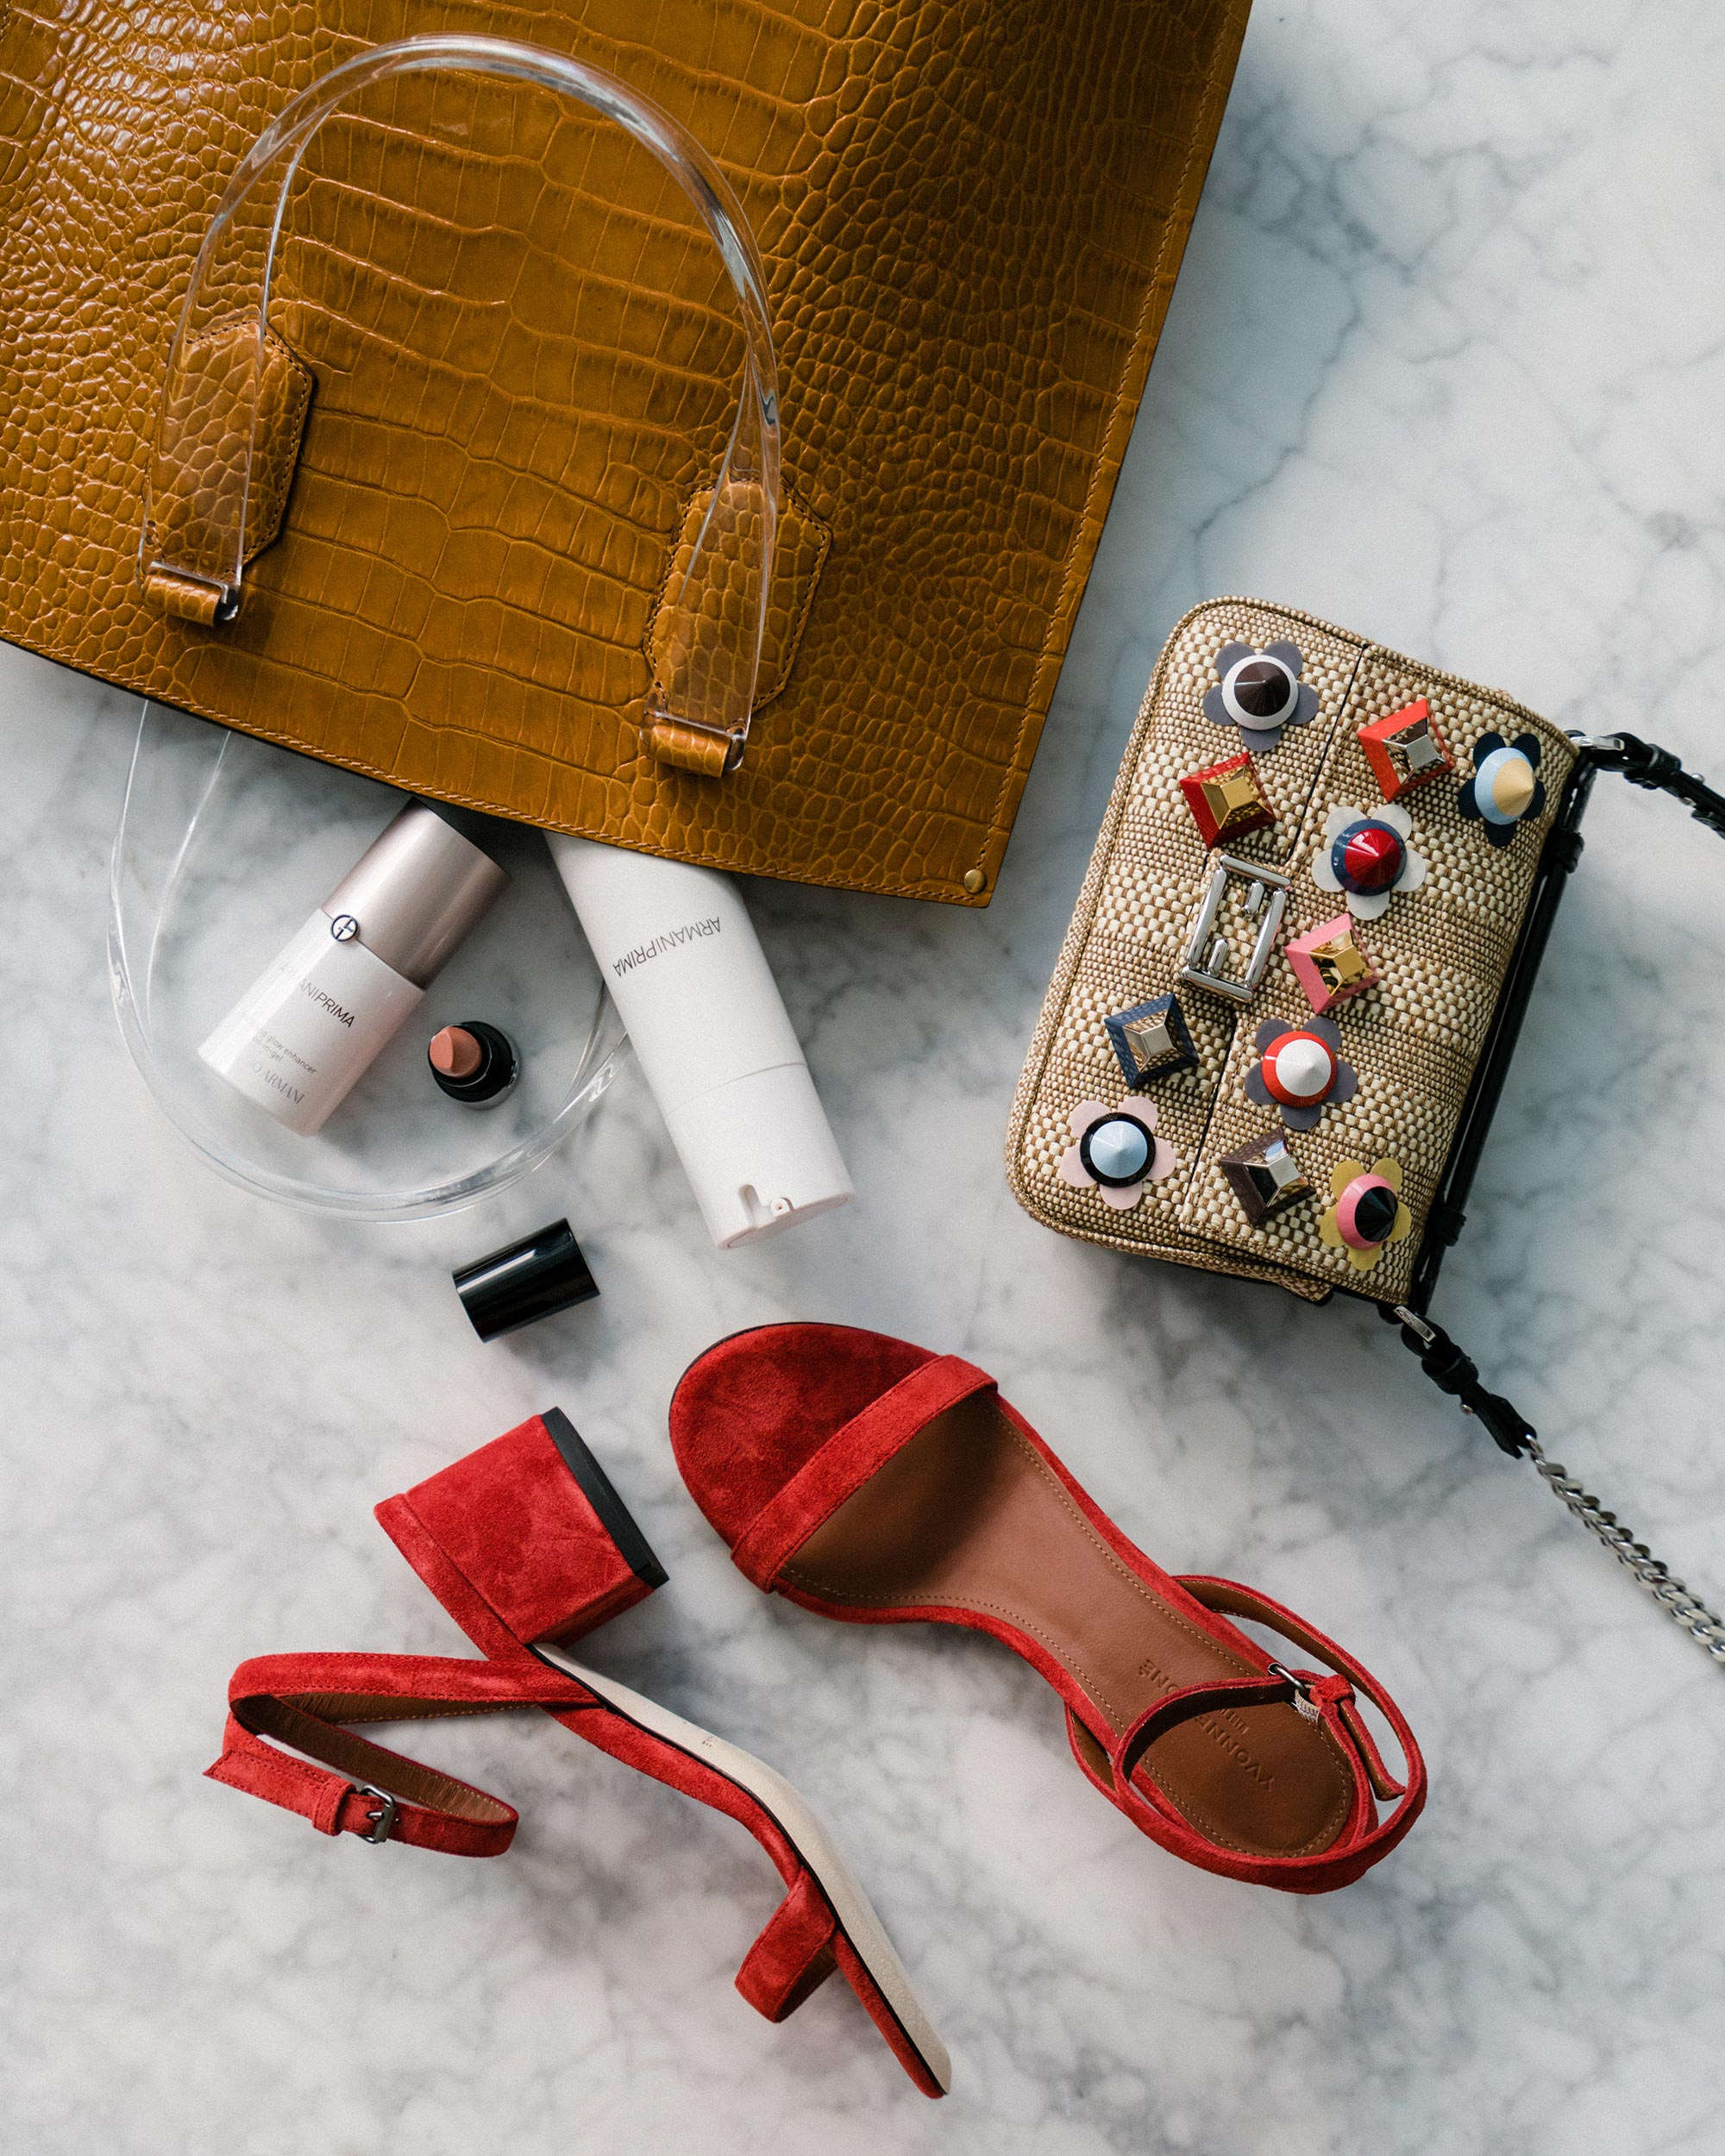 Trademark Bag ,  Armani Beauty Lotion  and  Face Oil ,  Fendi Bag ,  Yvonne Kone Heels